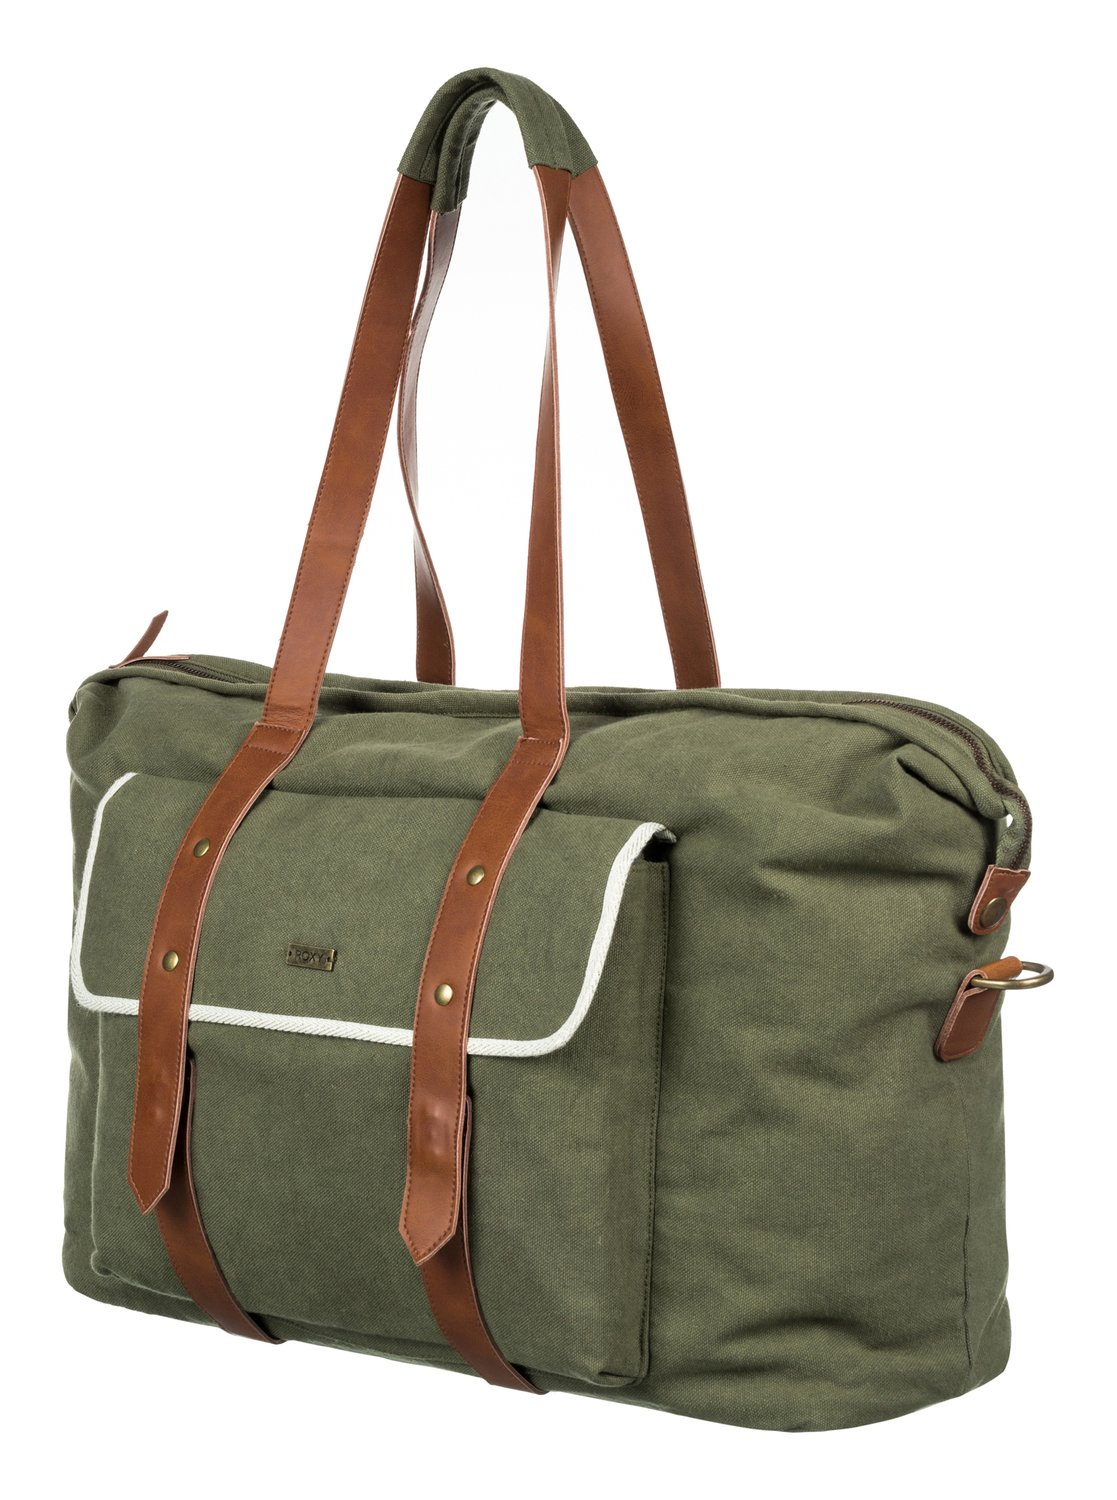 Roxy Beach Entry Weekend Womens Luggage One Size Dusty Olive